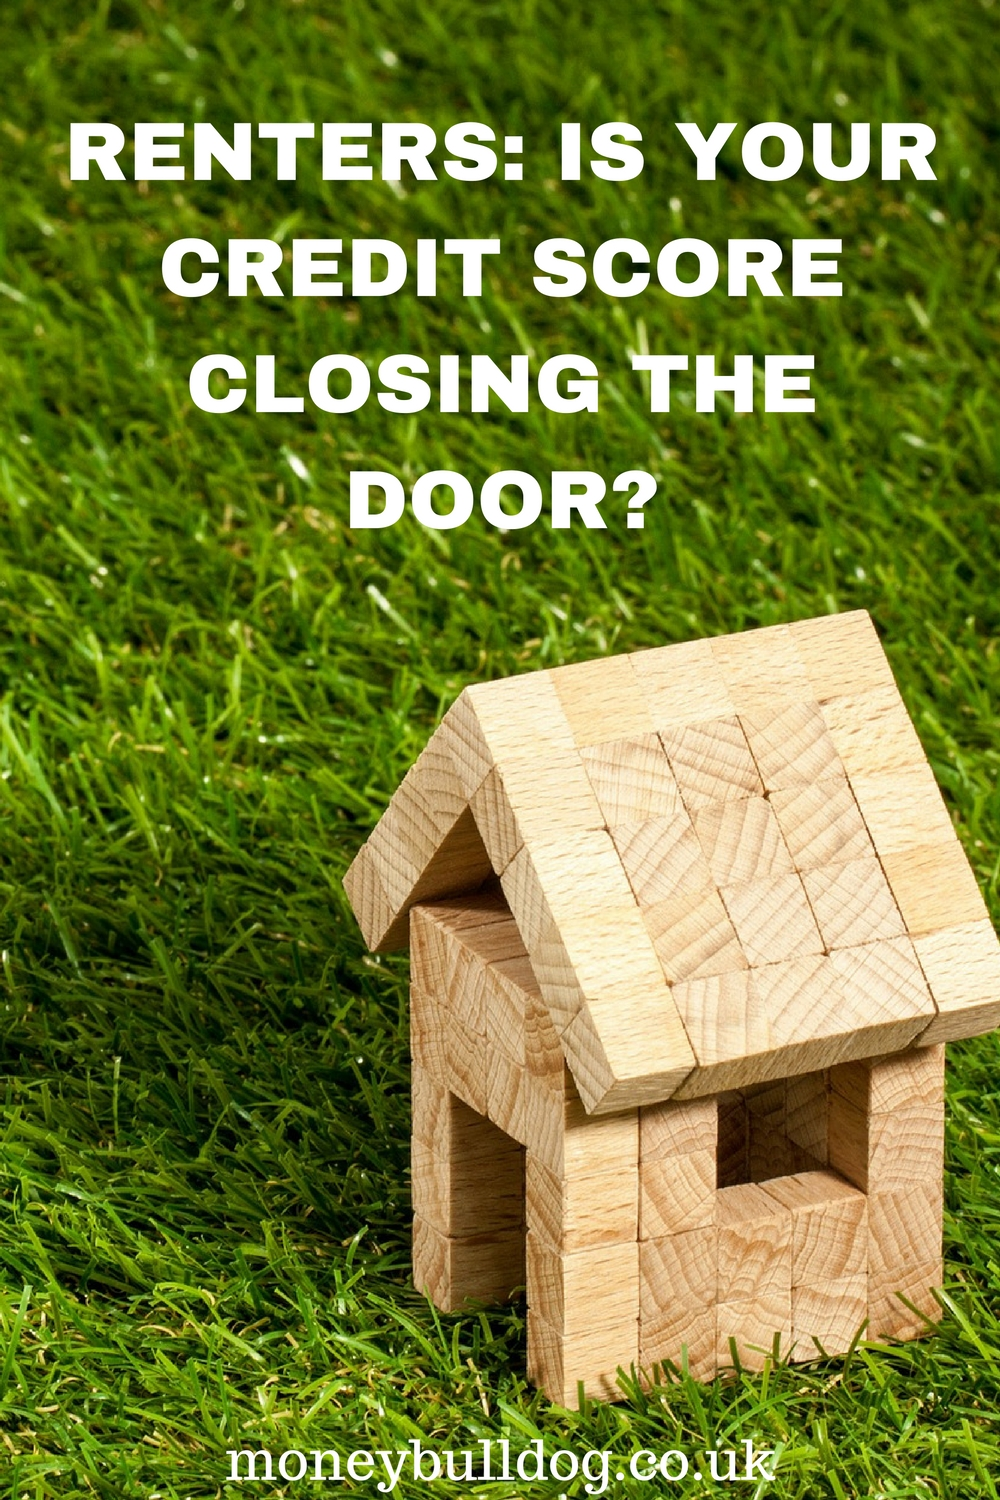 RENTERS - Is your credit score closing the door